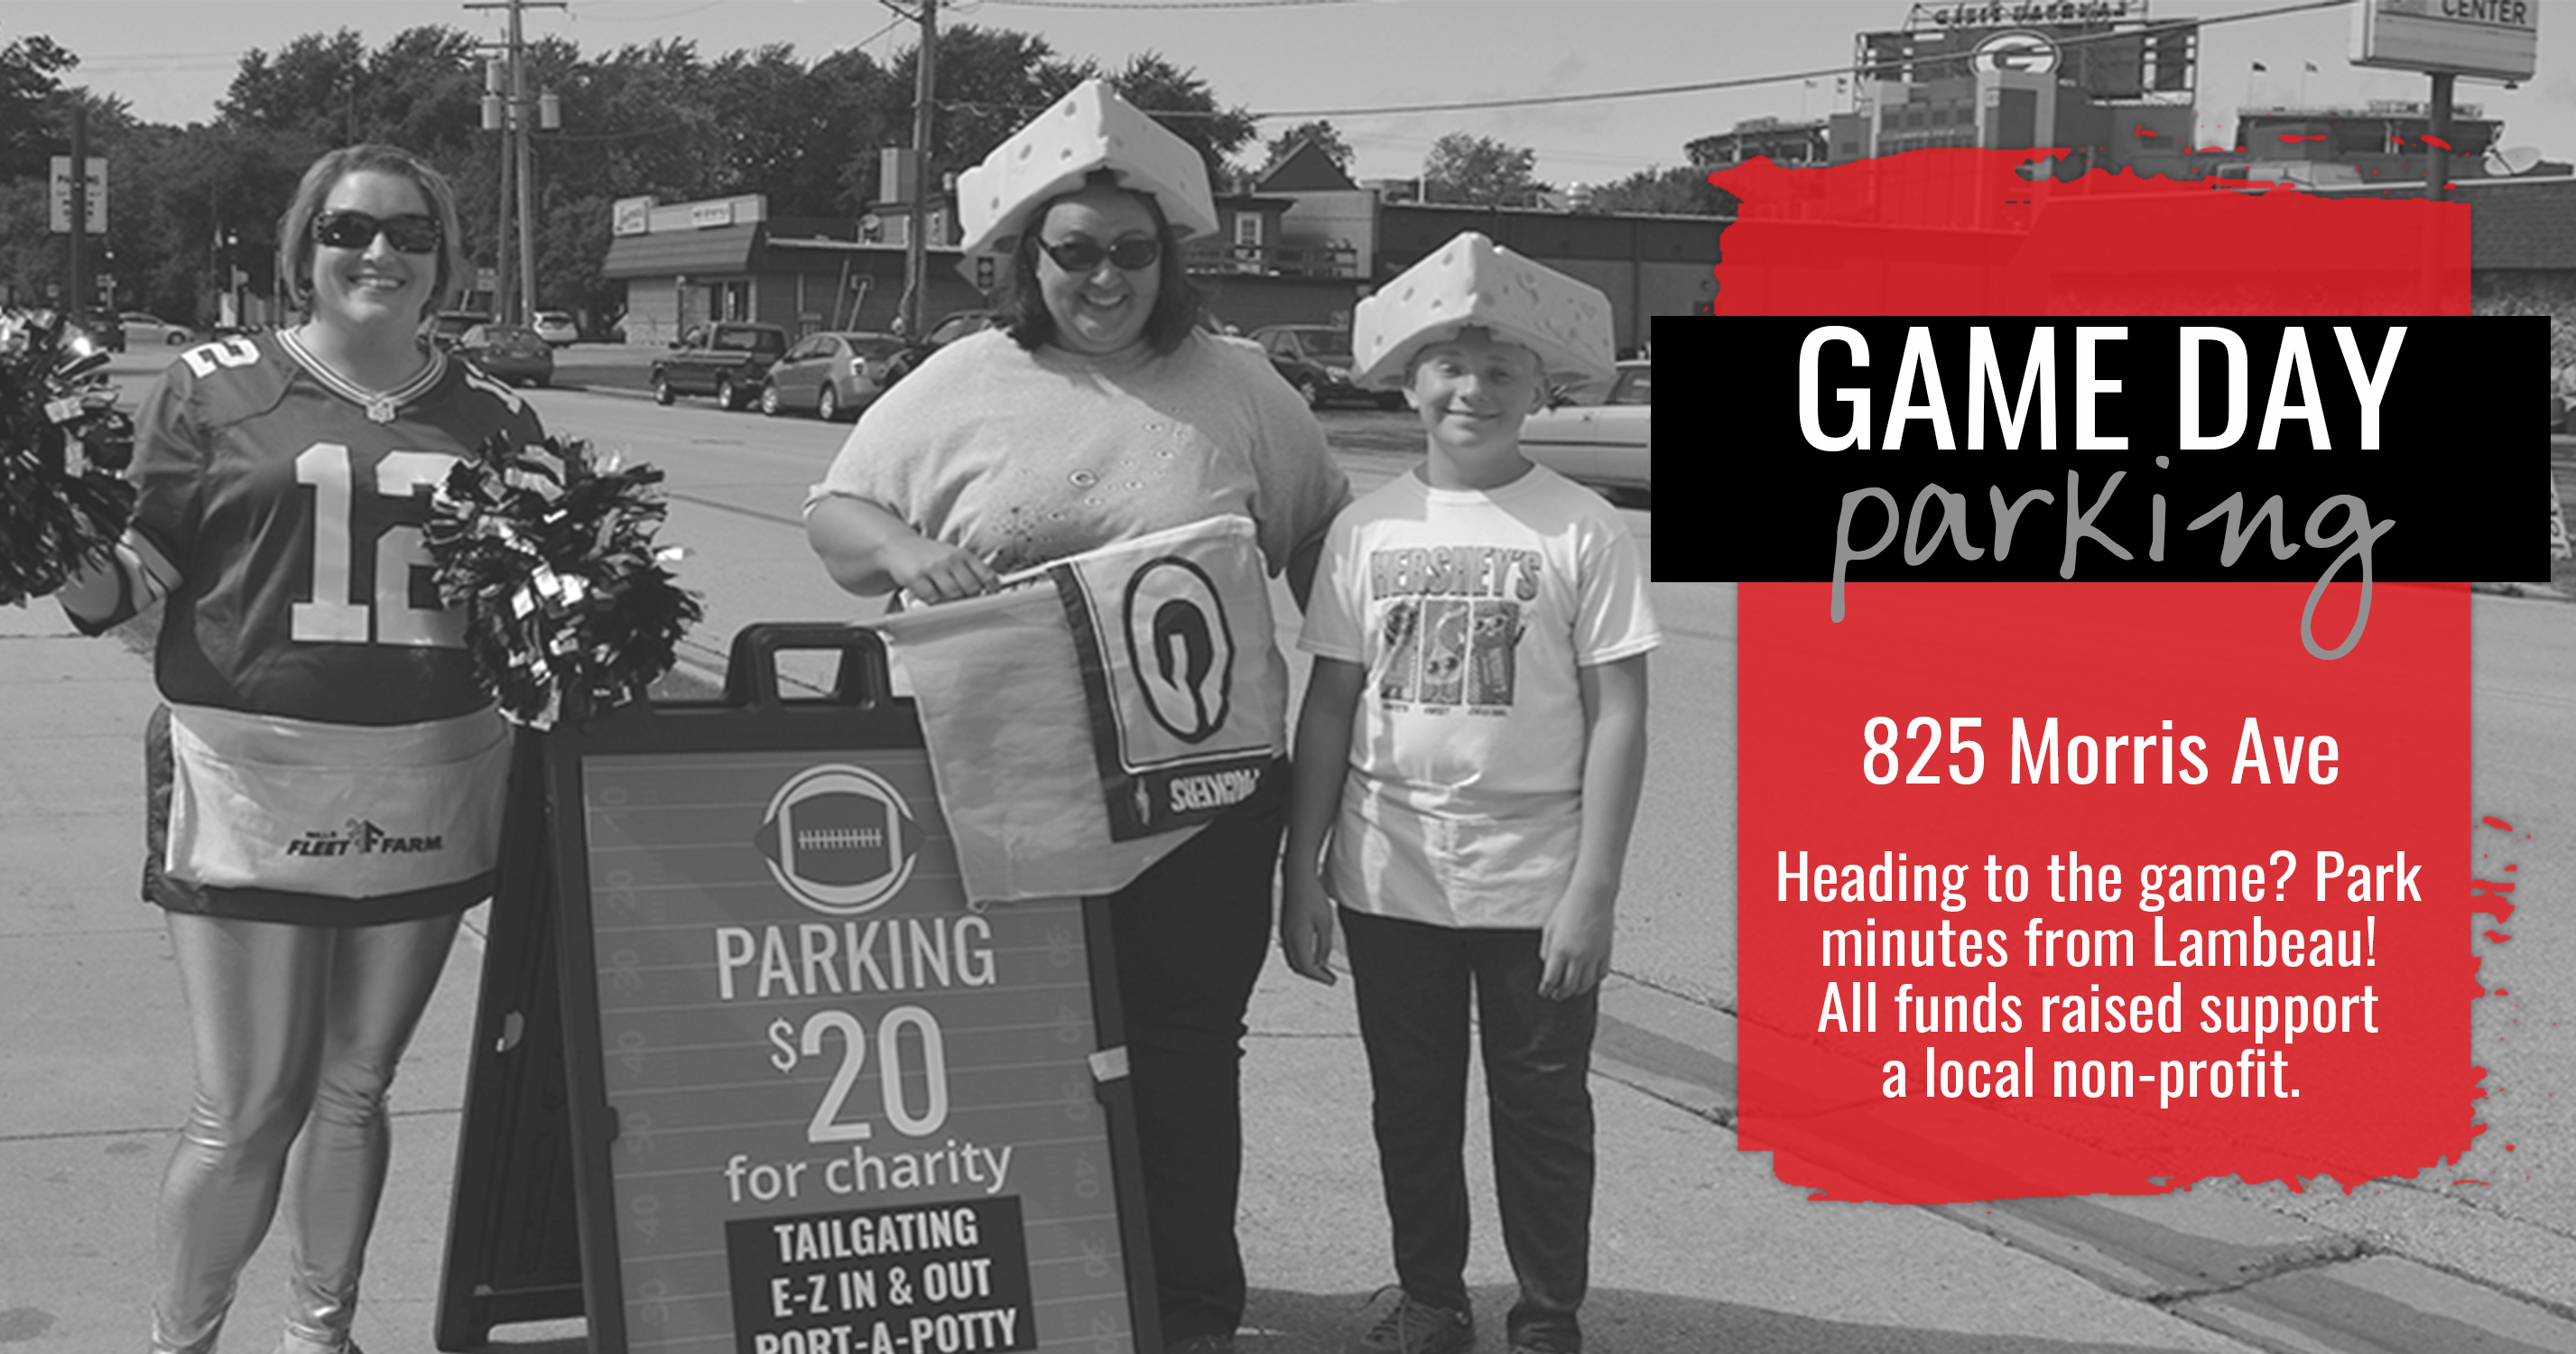 Game Day Parking. 825 Morris Avenue. Heading to the game? Park minutes from Lambeau! All funds raised support a local non-profit.